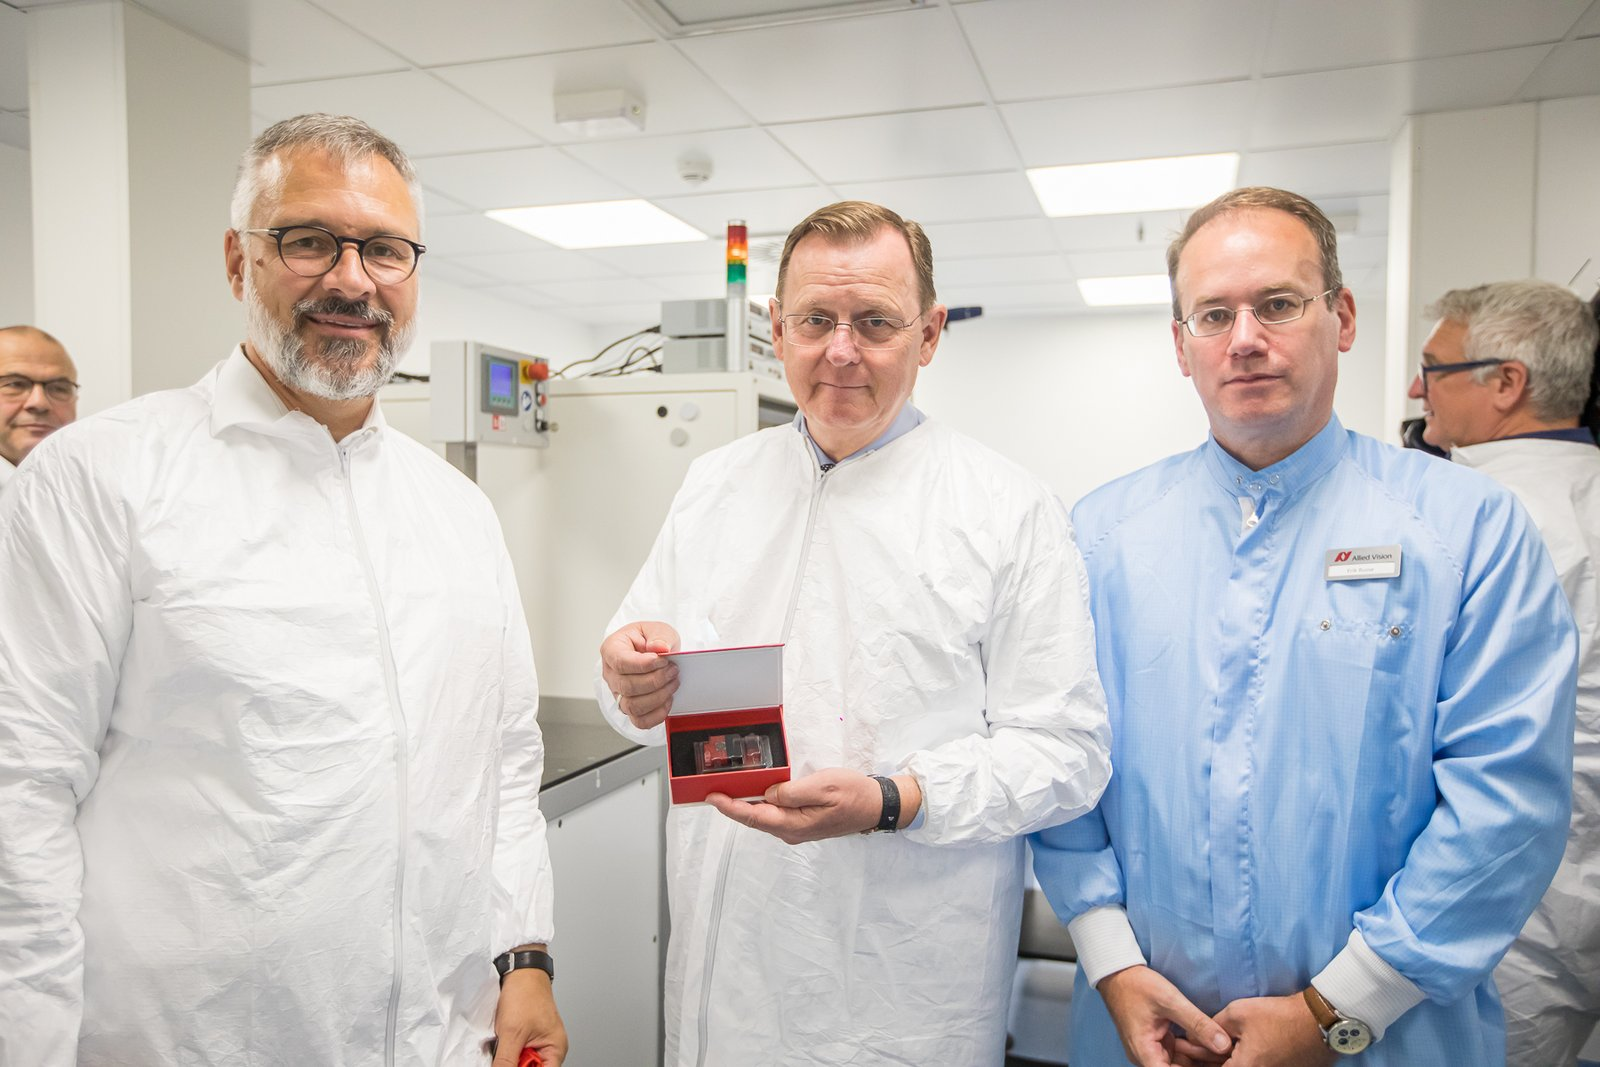 Andreas Gerk (CEO, left) and Erik Busse (Global Manufacturing Engineer, right) offer Prime Minister Ramelow the first serial production Alvium camera